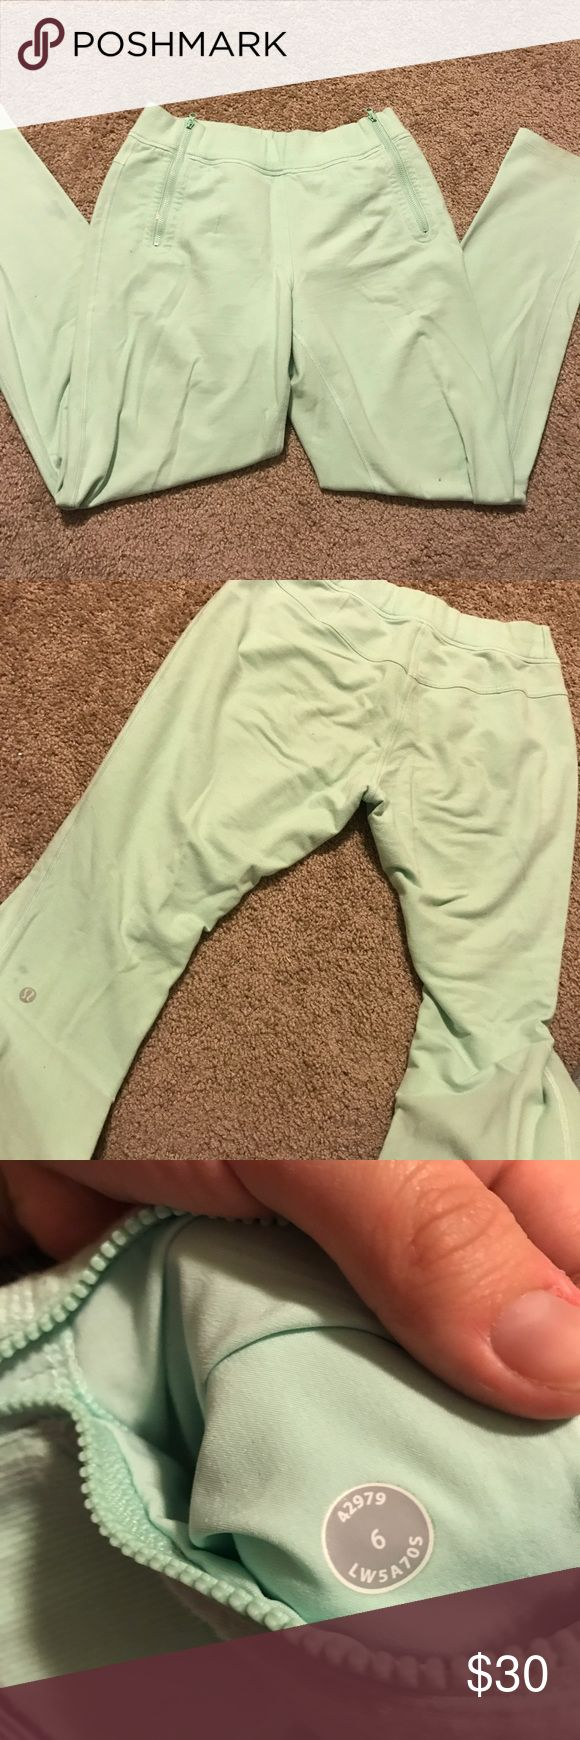 Lululemon Skinny  Sweats pretty well worn, there are some marks on both ankles and a small drop of paint on one of the zippered pockets. pilling in between the legs is shown. there's two small spots above the logo. make an offer! lululemon athletica Pants Skinny